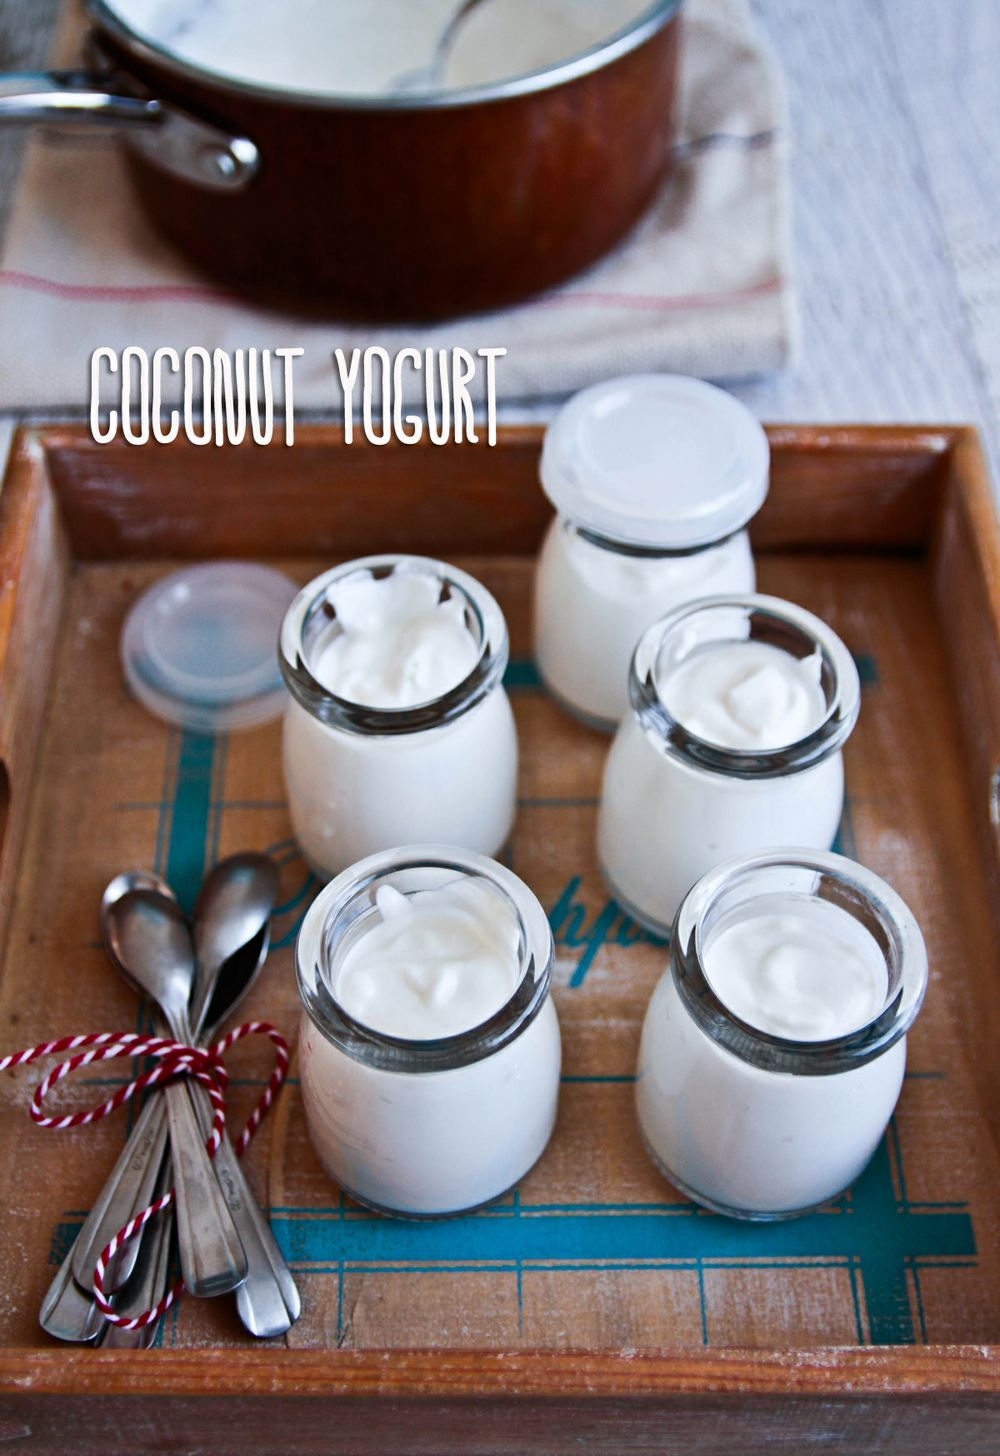 m-coconut-yogurt-1-3